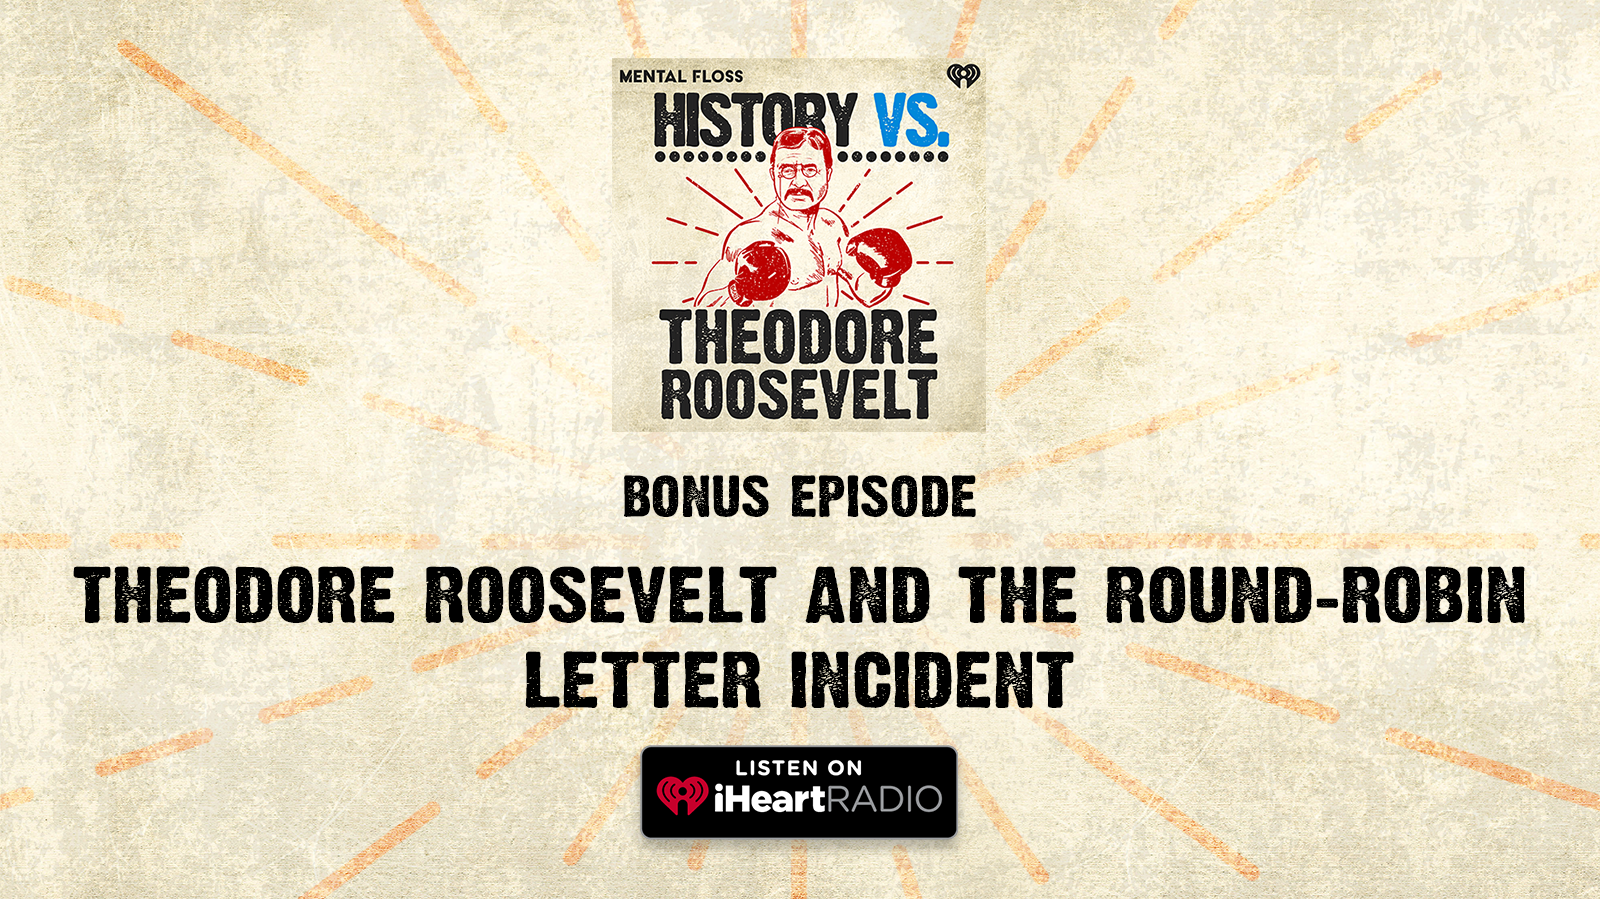 History Vs. Podcast: Theodore Roosevelt and the Round-Robin Letter Incident